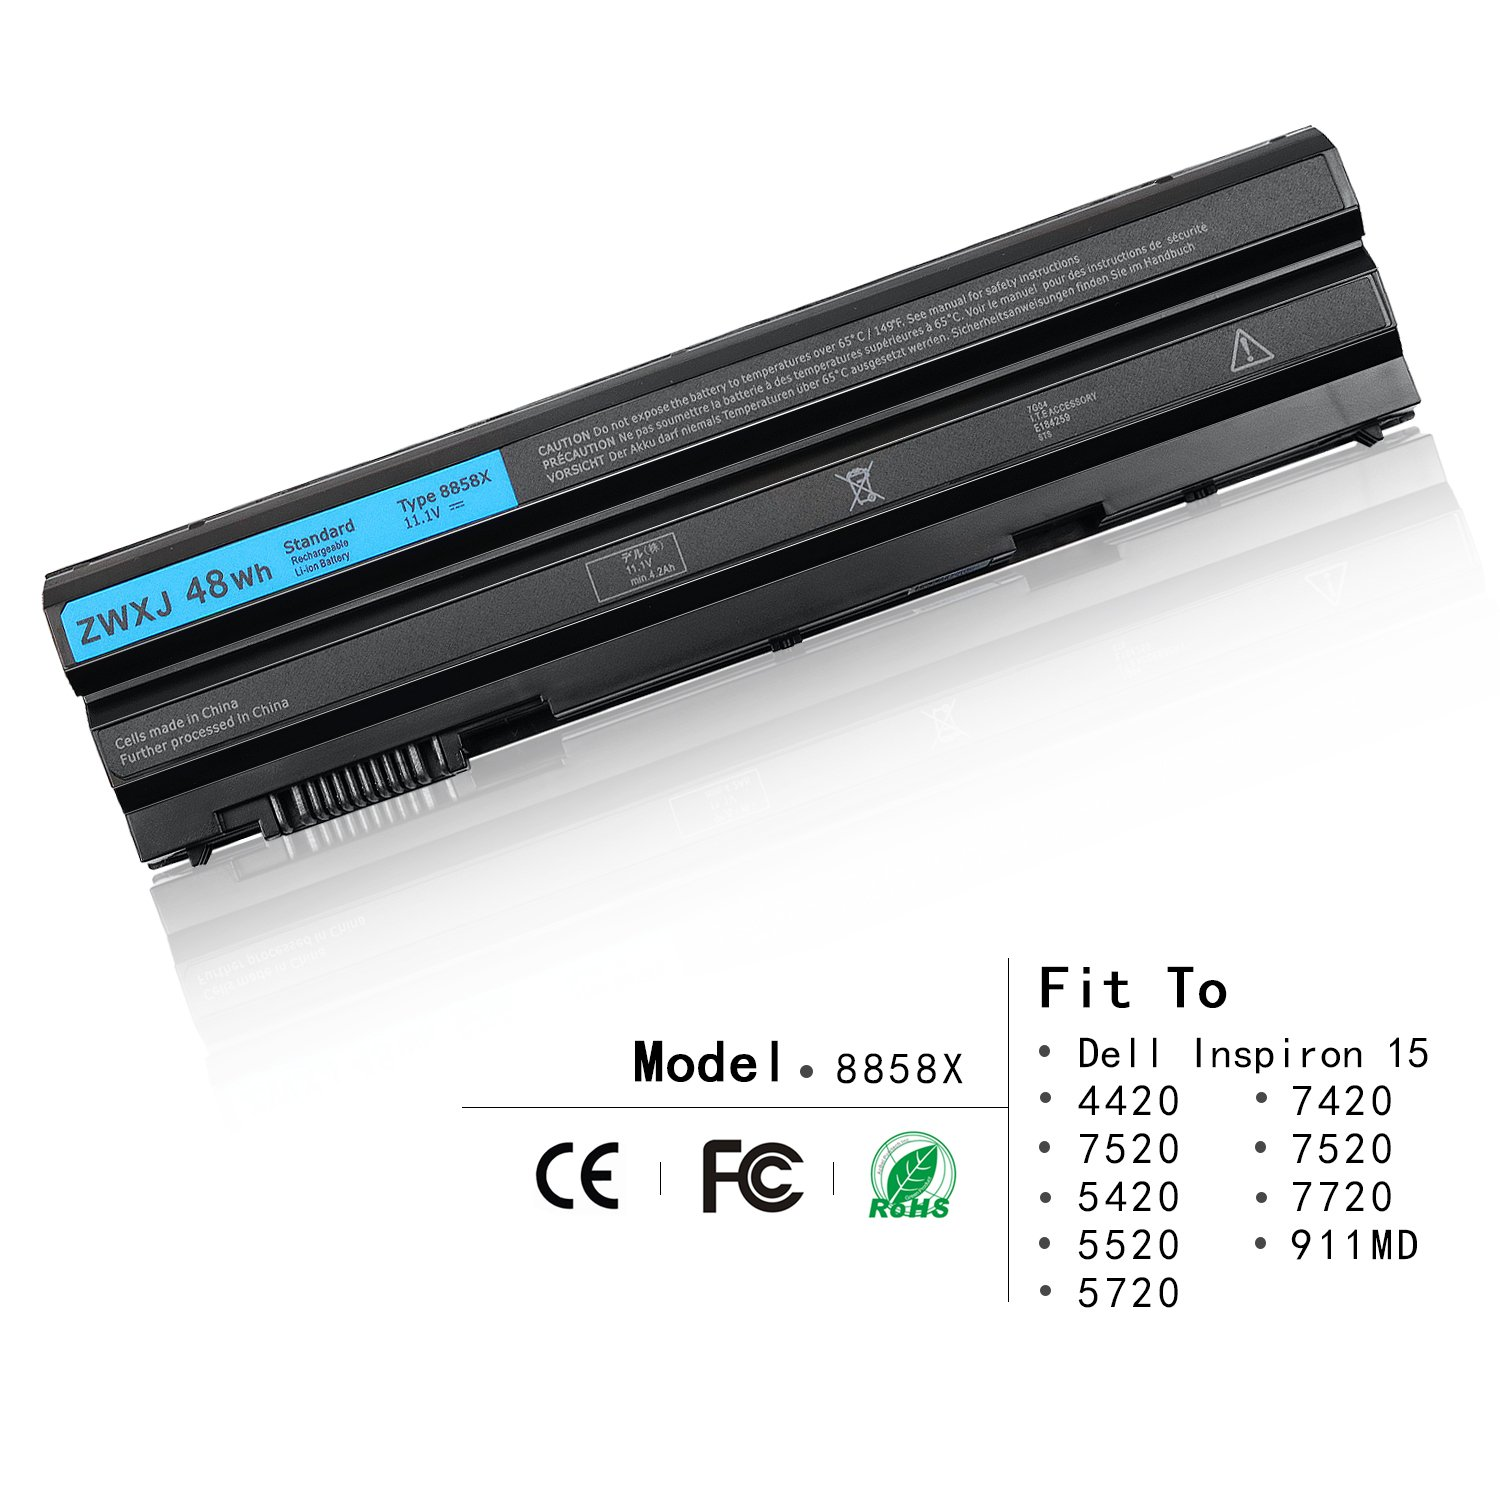 ZWXJ Laptop Battery 8858X (11.1V 48WH) for Dell Inspiron 15 4420 7520 5420 5520 5720 7420 7520 7720 8P3YX 911MD 451-12048 E5420 E5430 E5530 E6420 E6430 E6520 E6530 N4420 N4720 T54FJ M5Y0X N3X1D 911MD by ZWXJ (Image #1)